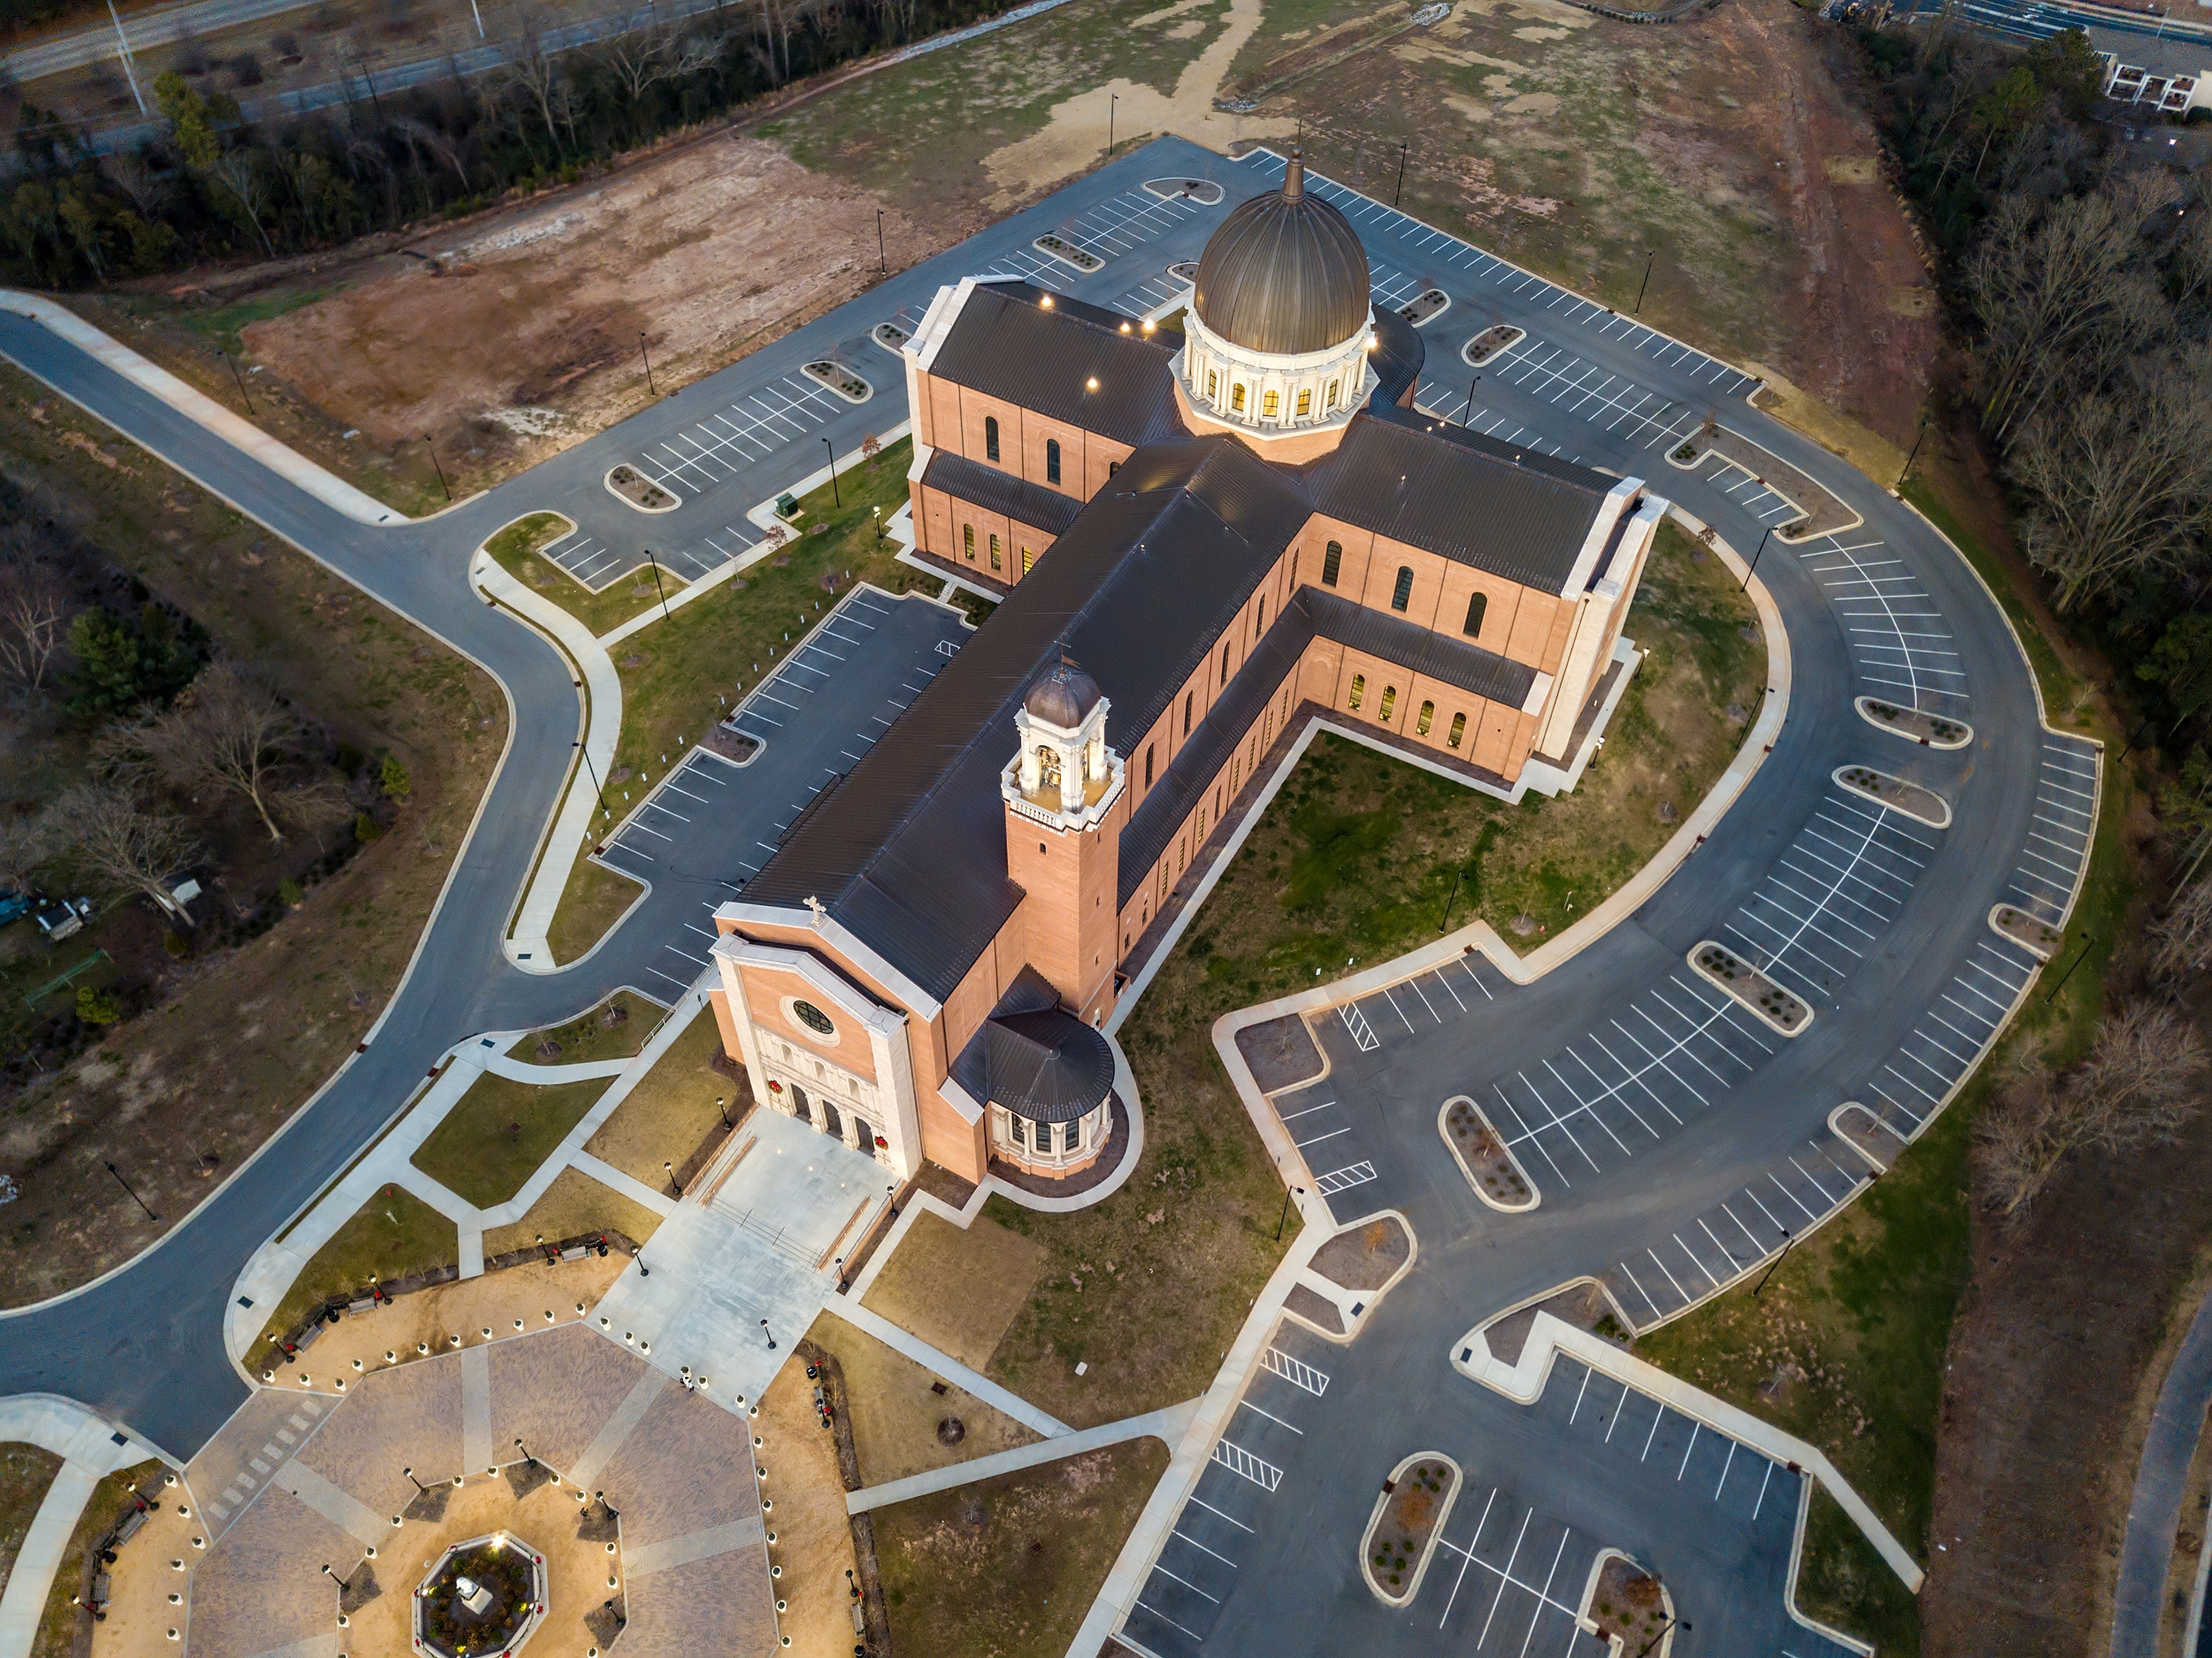 2018_12_25_DJI_Holy_Name_of_Jesus_016-HDR-2_01.jpg